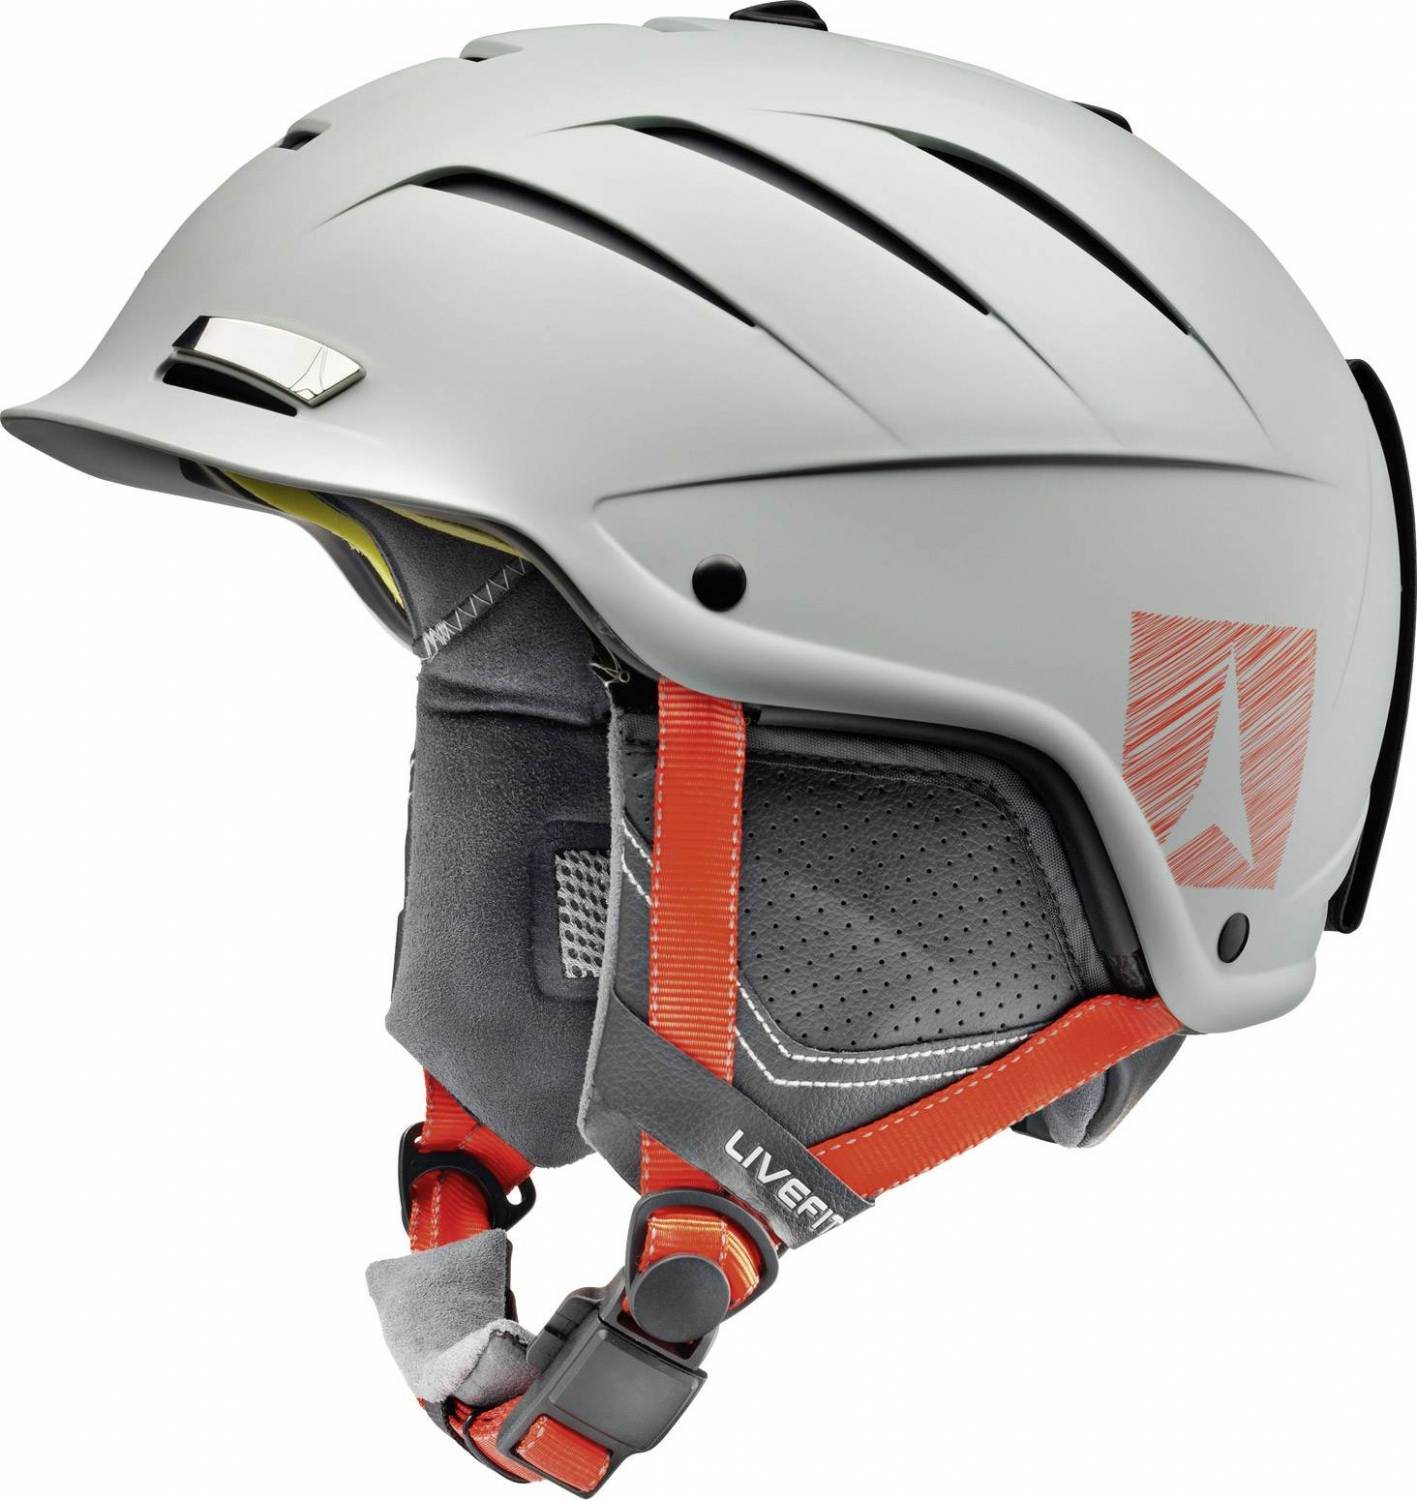 Atomic Nomad Live Fit Allmountain Skihelm (Größe: 59-62 cm, grey)